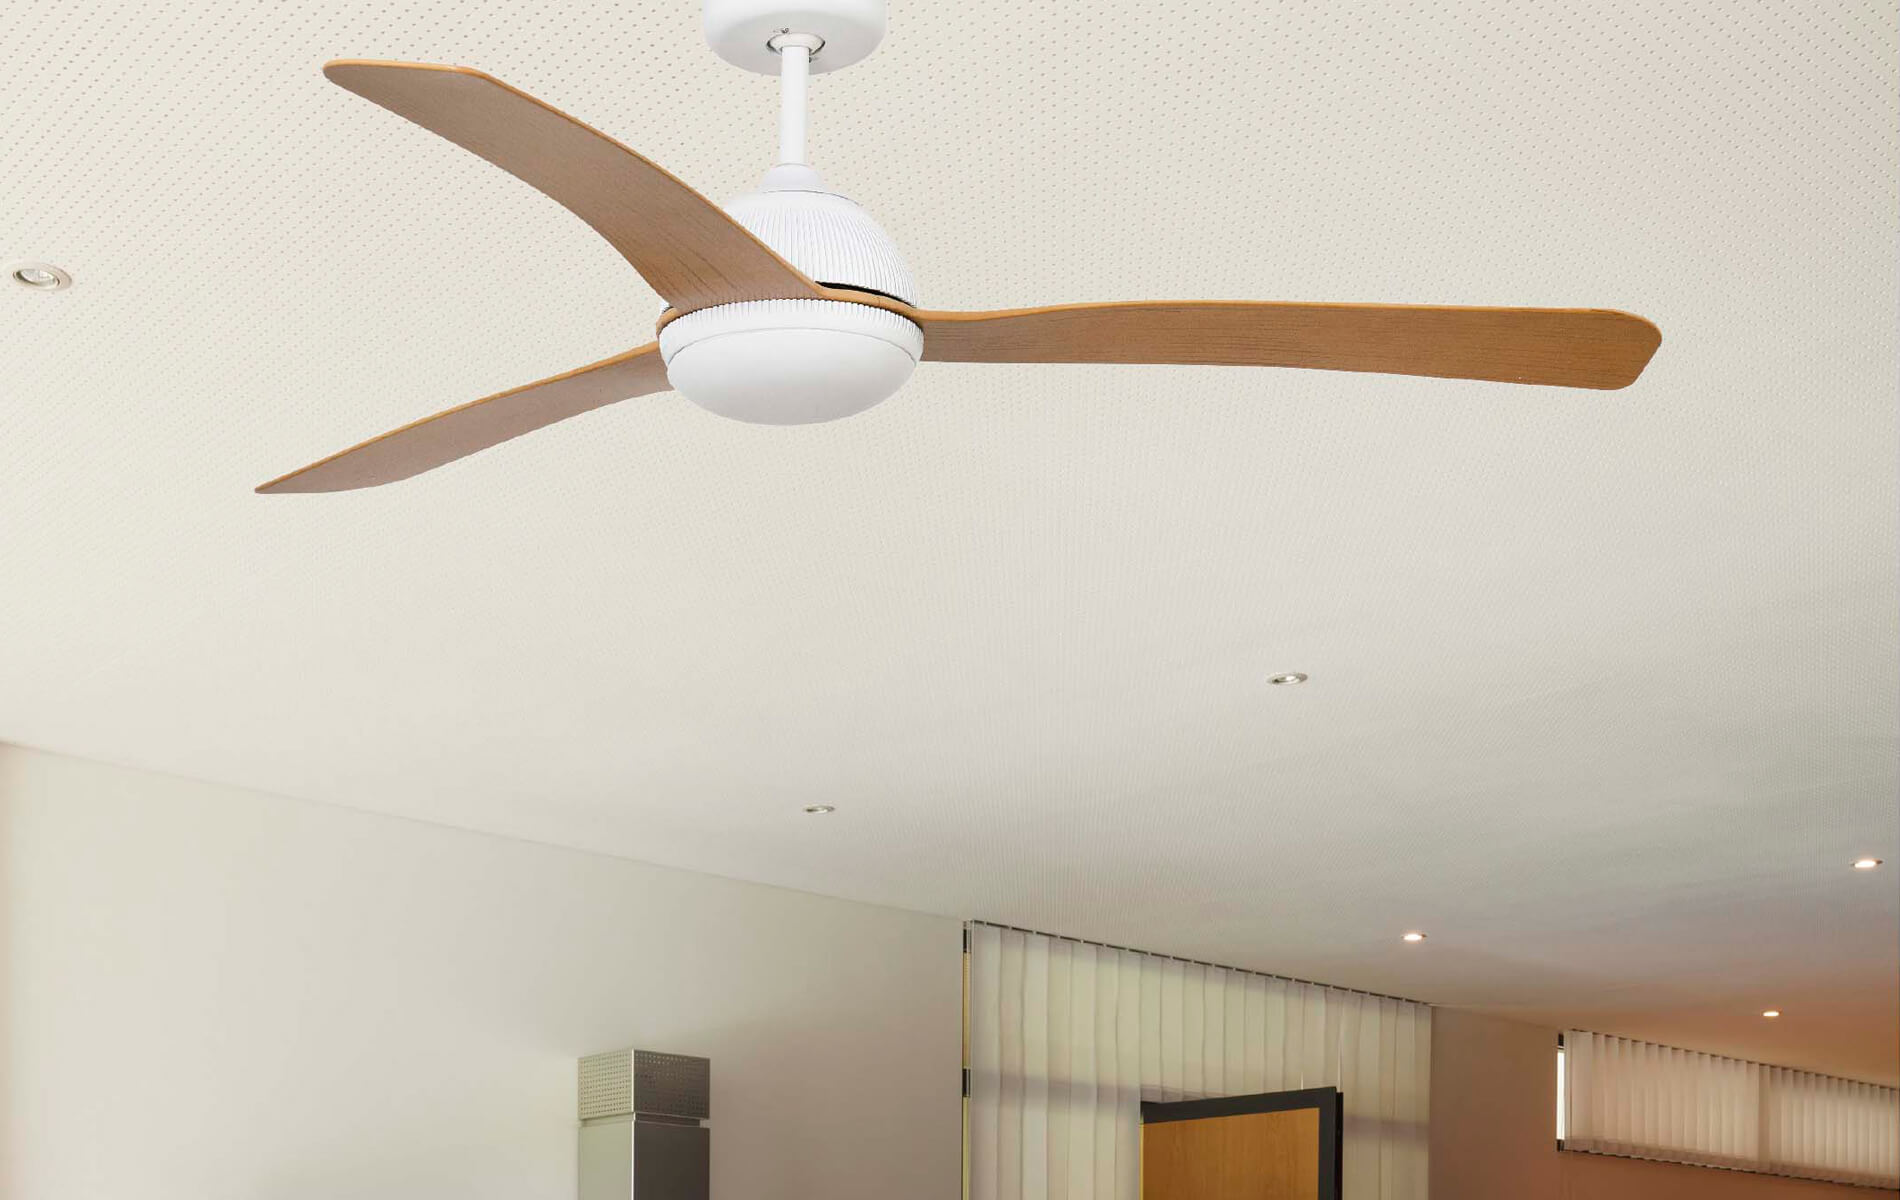 More information of Faro GRID ceiling fan.